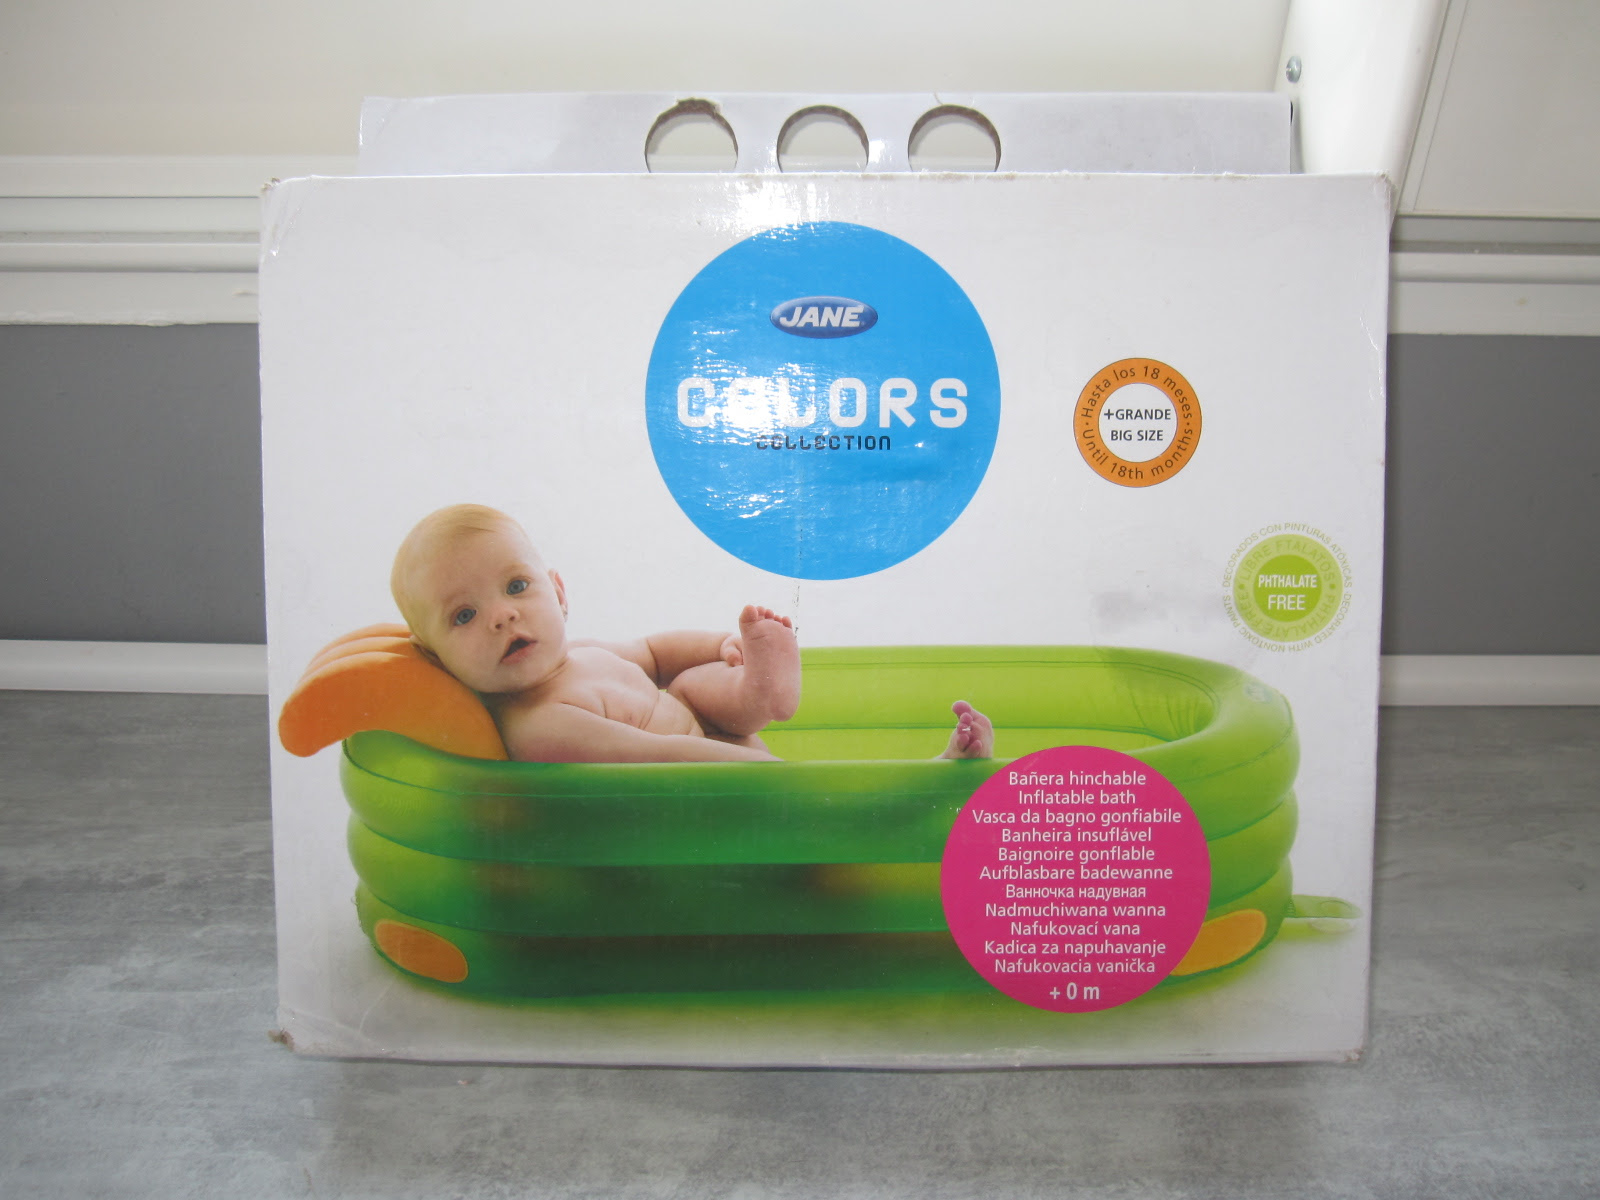 Baignoire Gonflable Bebe Jane Multipositions Aukazoo